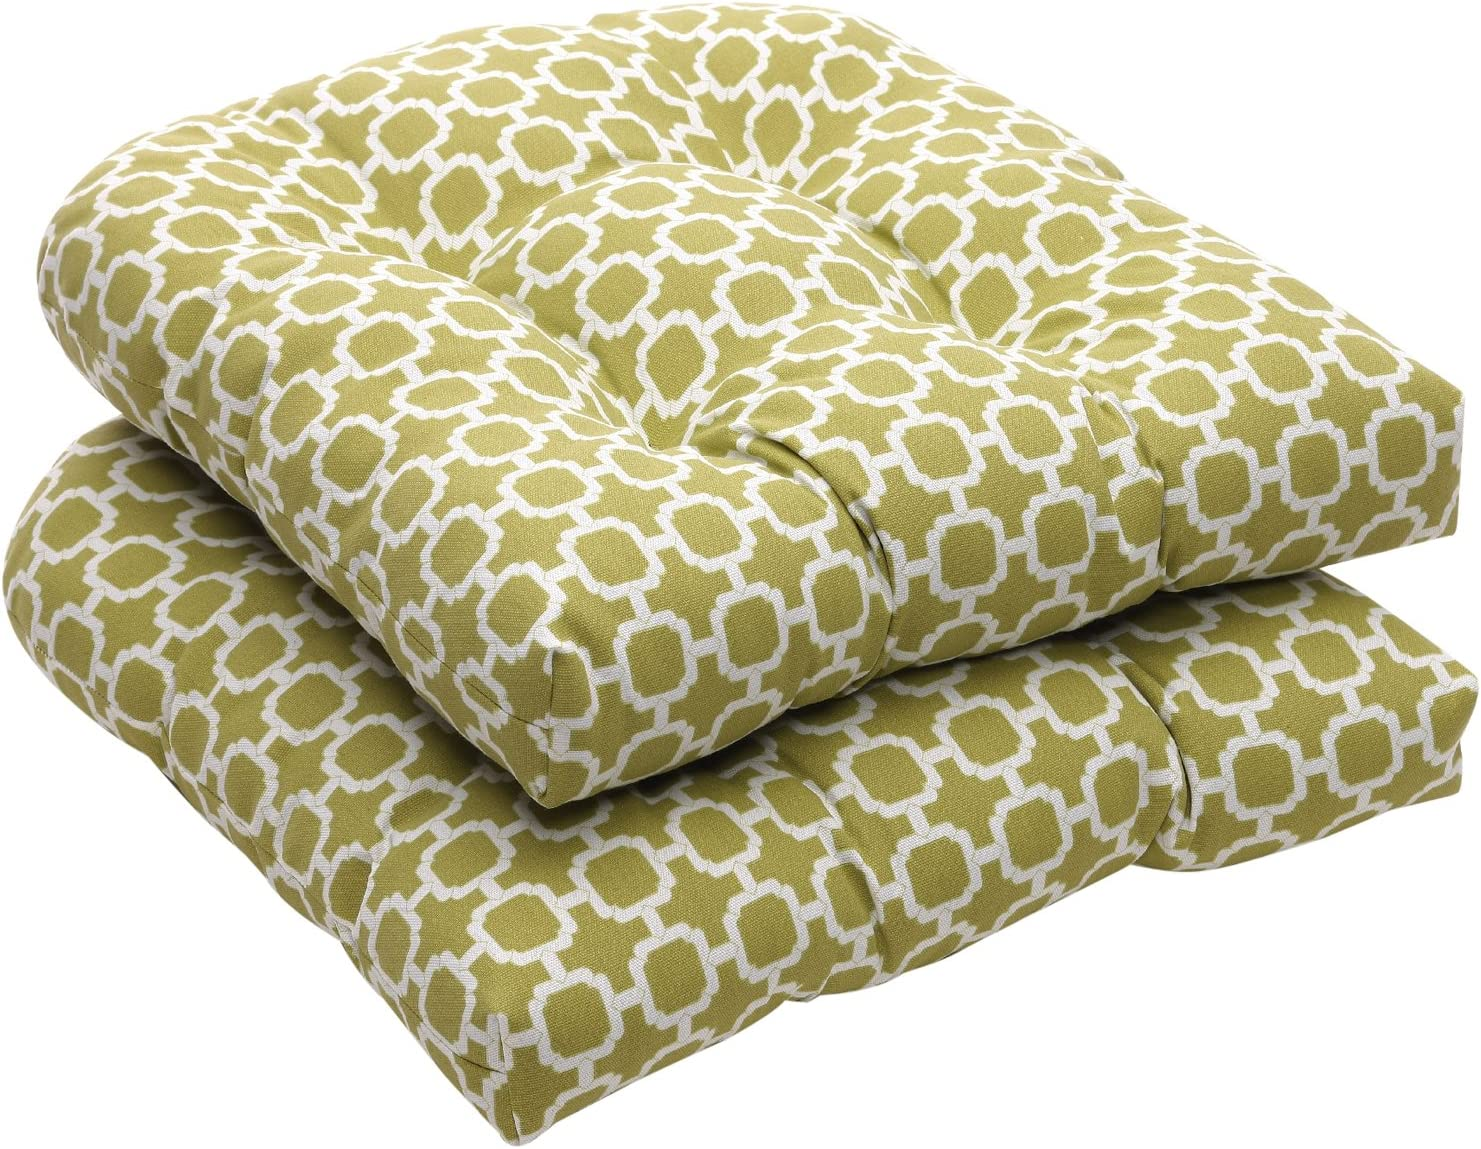 "Pillow Perfect Indoor/Outdoor Geometric Wicker Seat Cushions, 19"" L x 19"" W x 5"" D, Green/White"